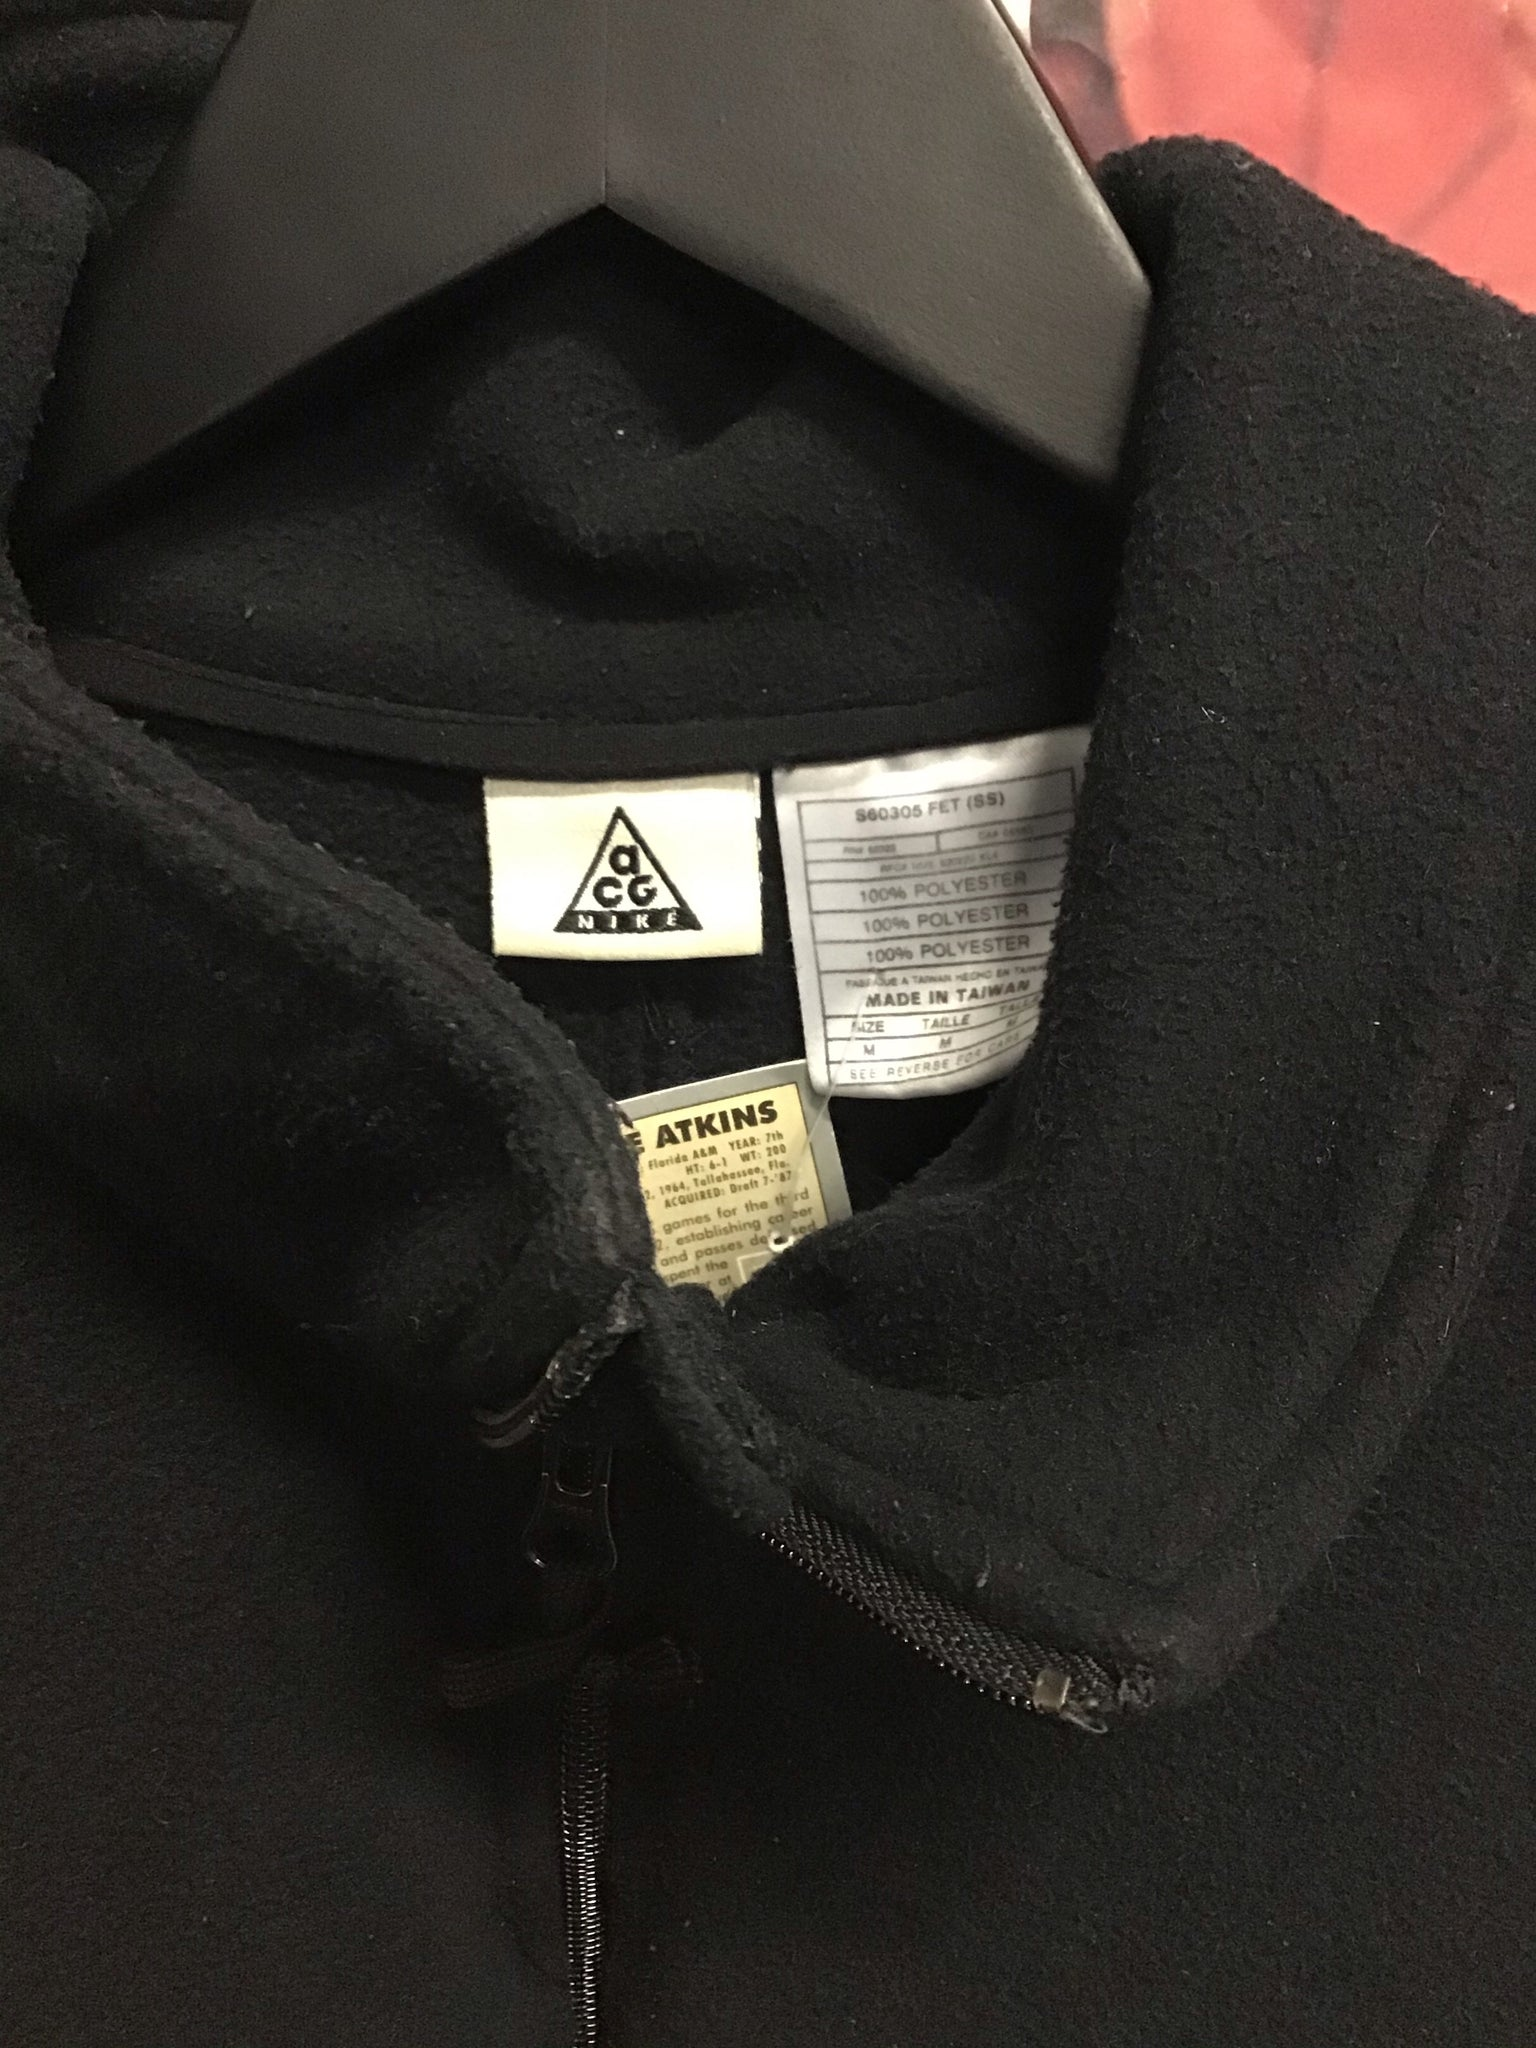 Nike ACG Fleece Medium - Decades of dope